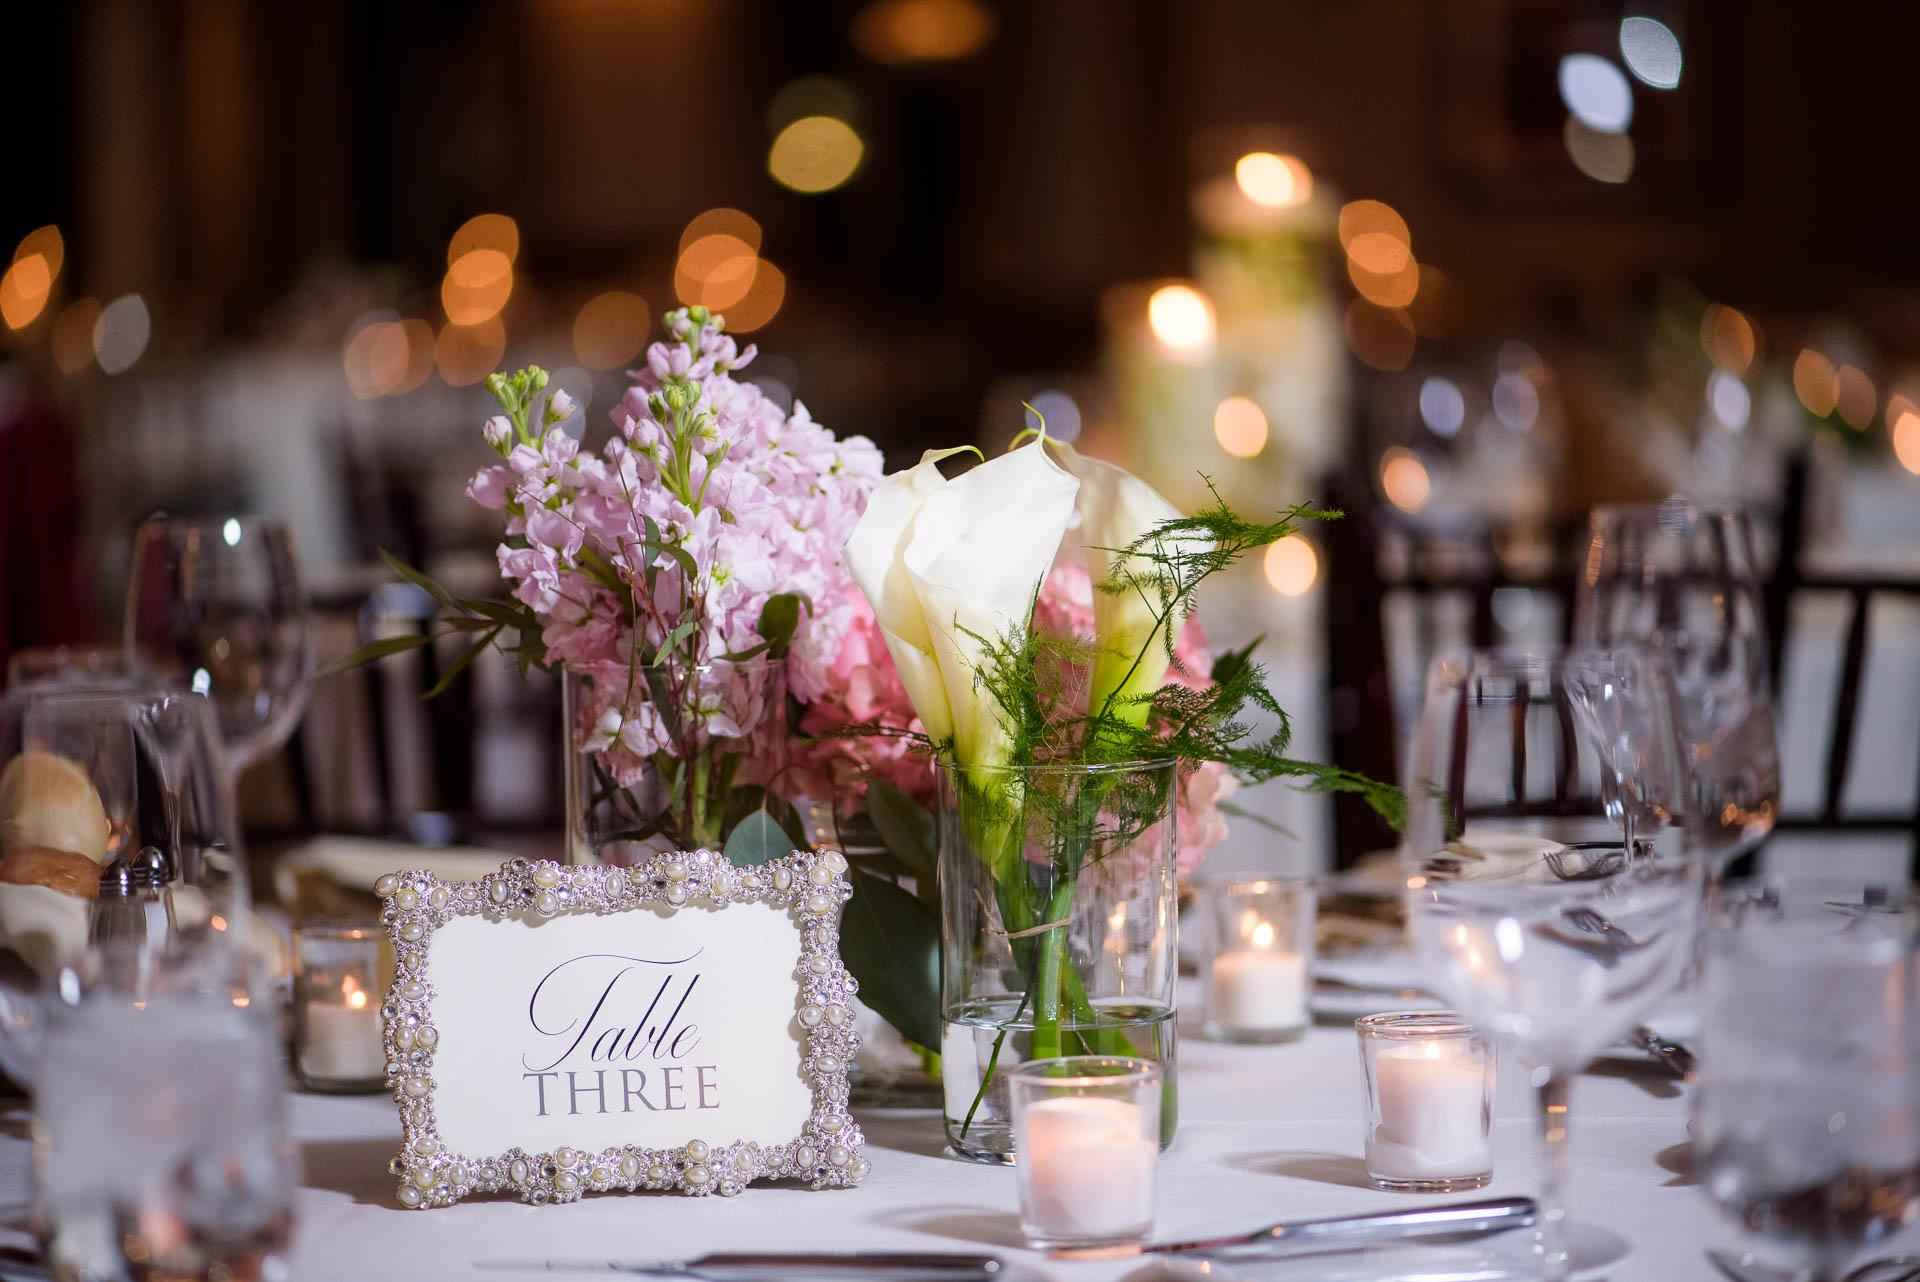 Wedding reception detail photo at the Mid America Club in Chicago.